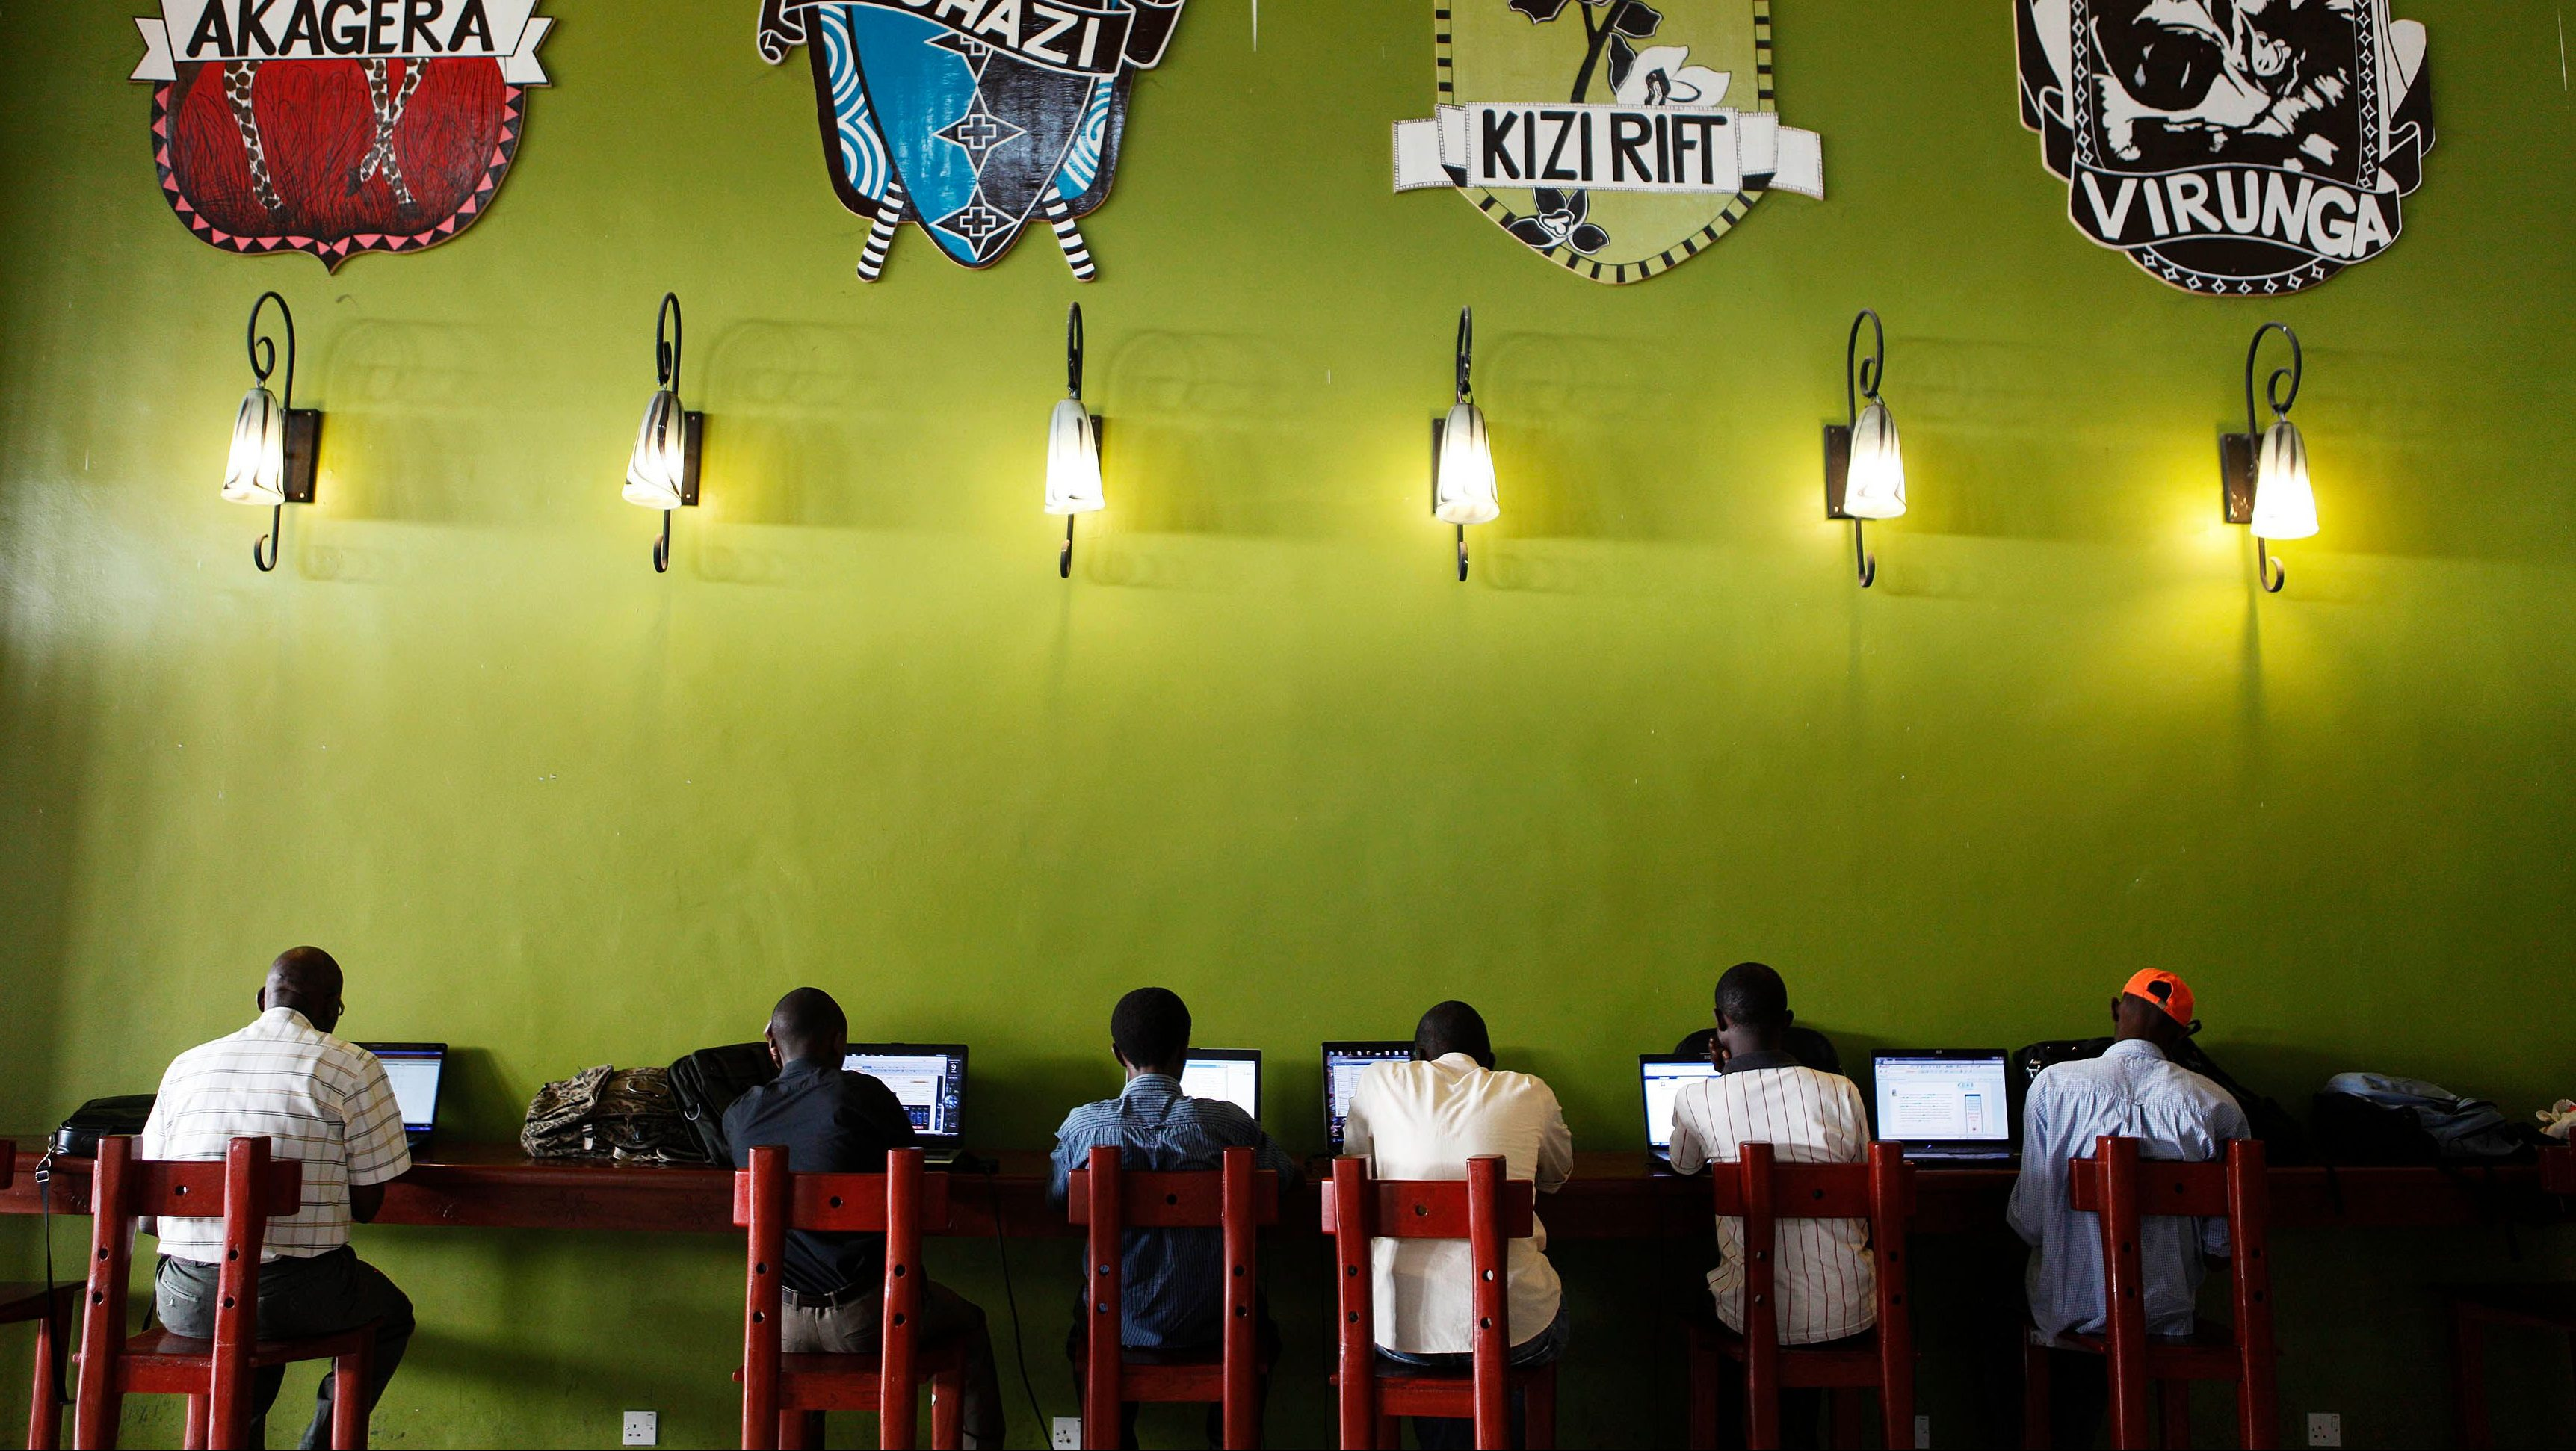 People surf the internet at a free Wi-Fi spot at Kigali international airport as results begin to trickle in from general elections, in the capital Kigali, August 9, 2010. Since Rwanda's genocide 16 years ago, incumbent President Paul Kagame has brought stability, development, foreign investment, broadband Internet and national health insurance, but critics accuse the former rebel fighter of autocratic tendencies and repression.